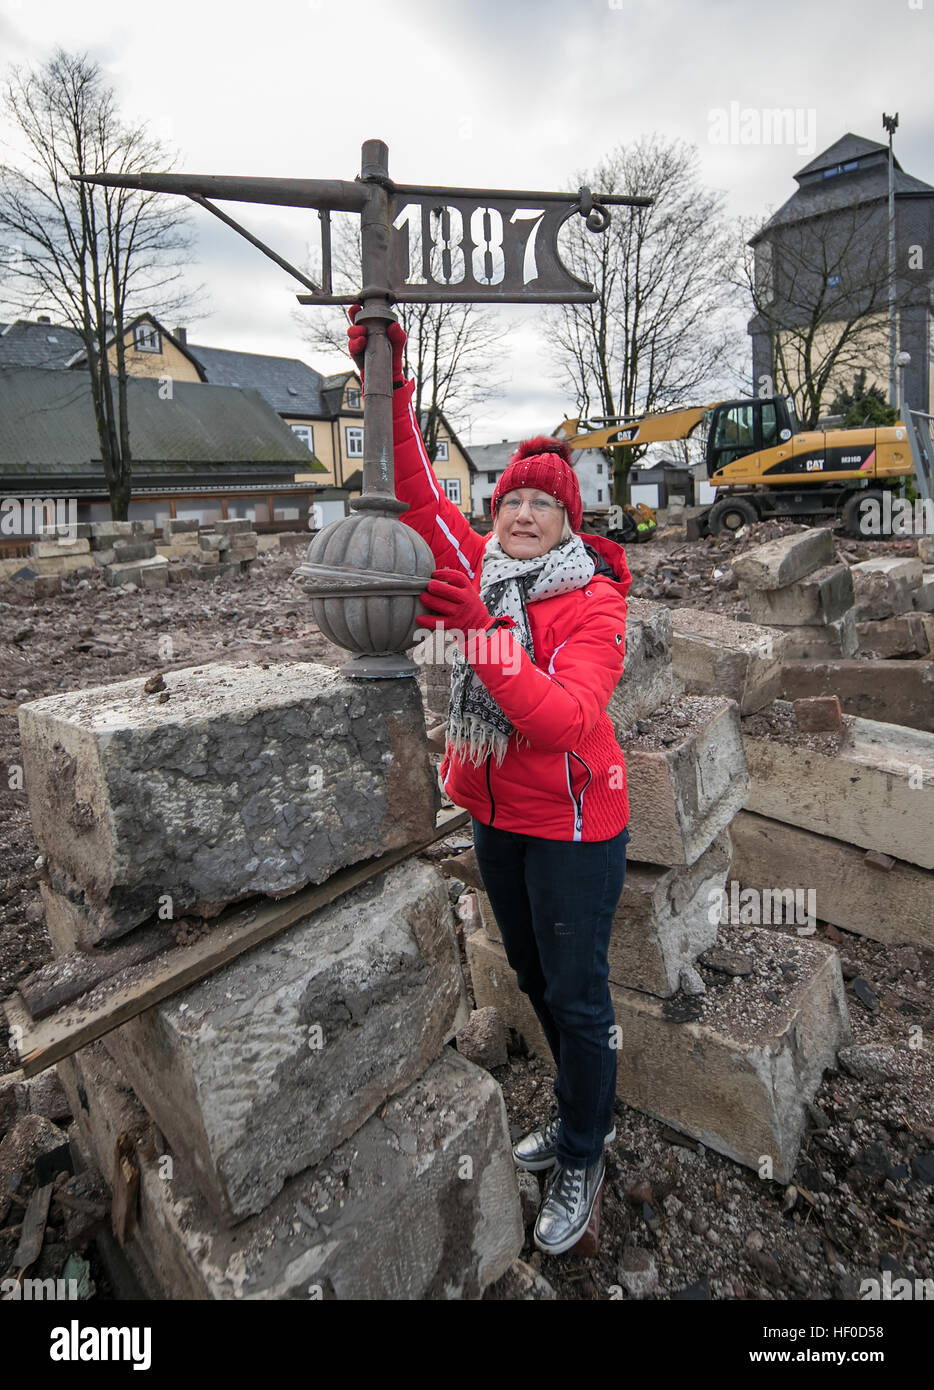 Local councillor Herma Lindenlaub with the steeple top of a demolished church in Neustadt am Rennsteig, Germany, - Stock Image